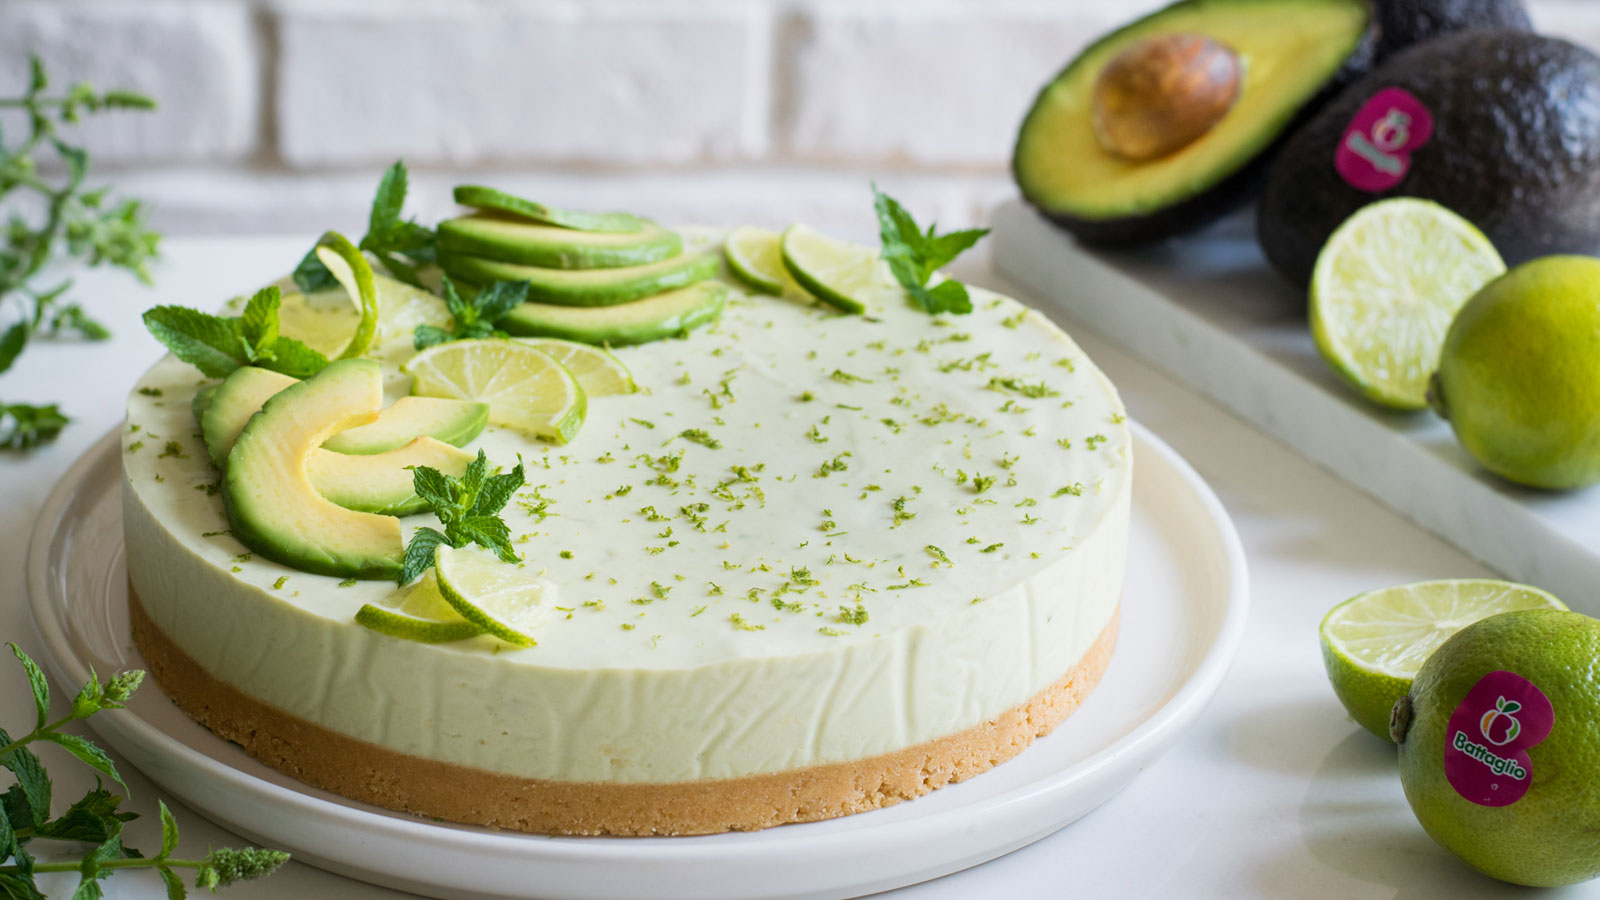 Ricetta CheeseCake Dolce Avocado Lime